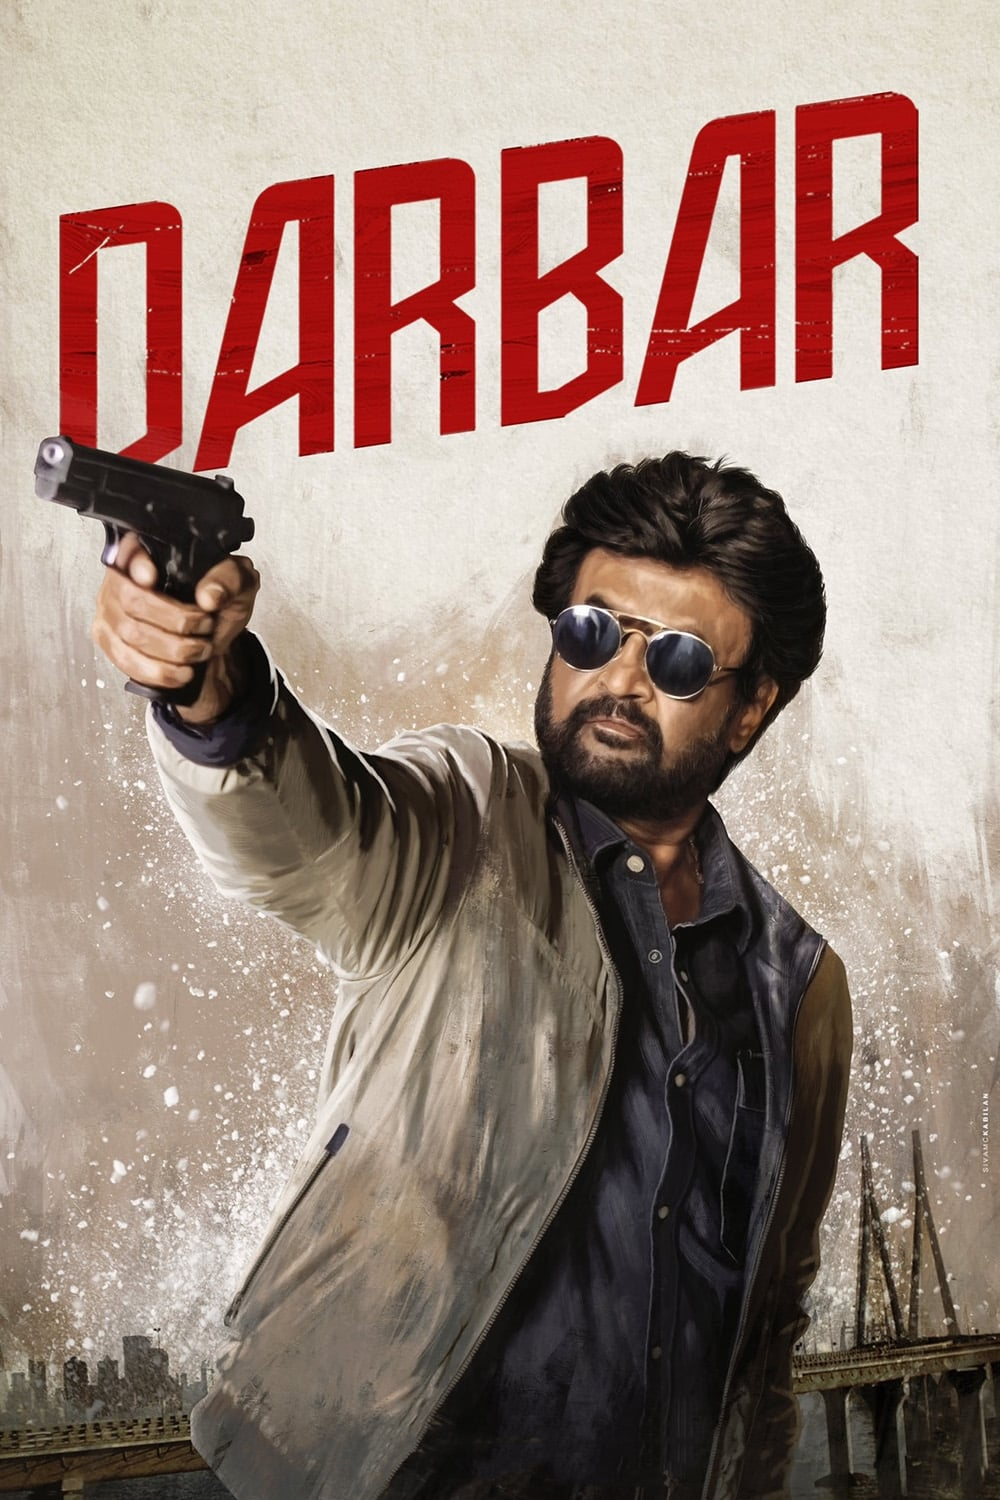 Darbar 2020 (Hindi) WEB-Rip x264 1080p [4.49 GB] 720p [1.31 GB] 480p [524 MB] | G-Drive